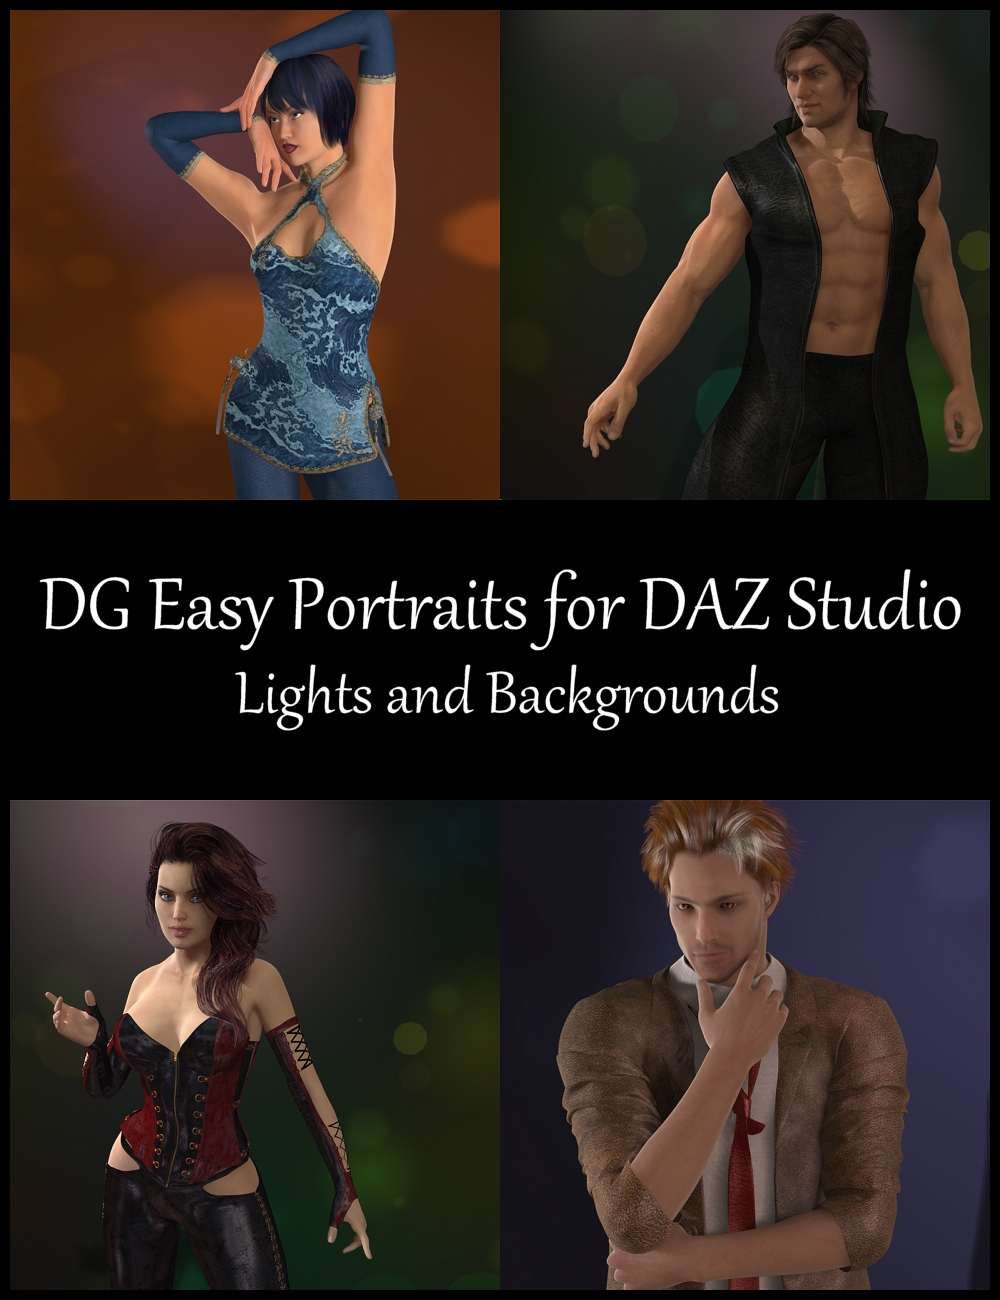 DG Easy Portrait Lights for DAZ Studio by: IDG DesignsDestinysGarden, 3D Models by Daz 3D